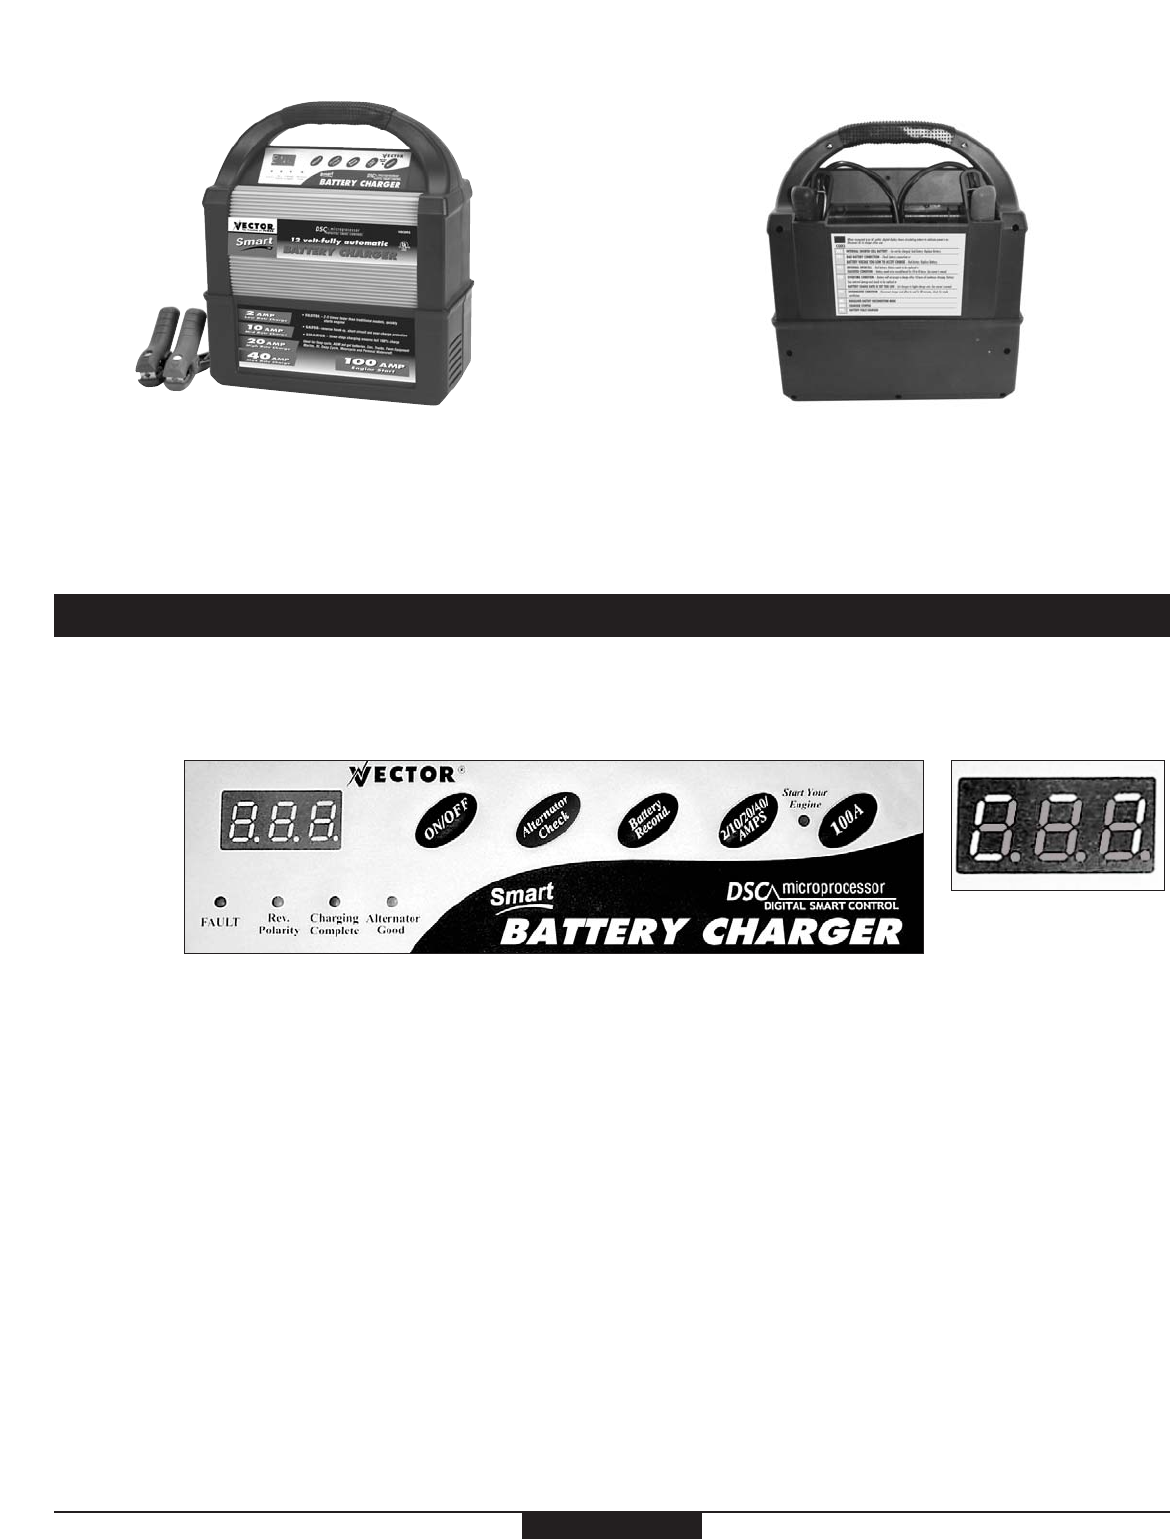 Vector battery charger user guide bing images for Vector canape user manual